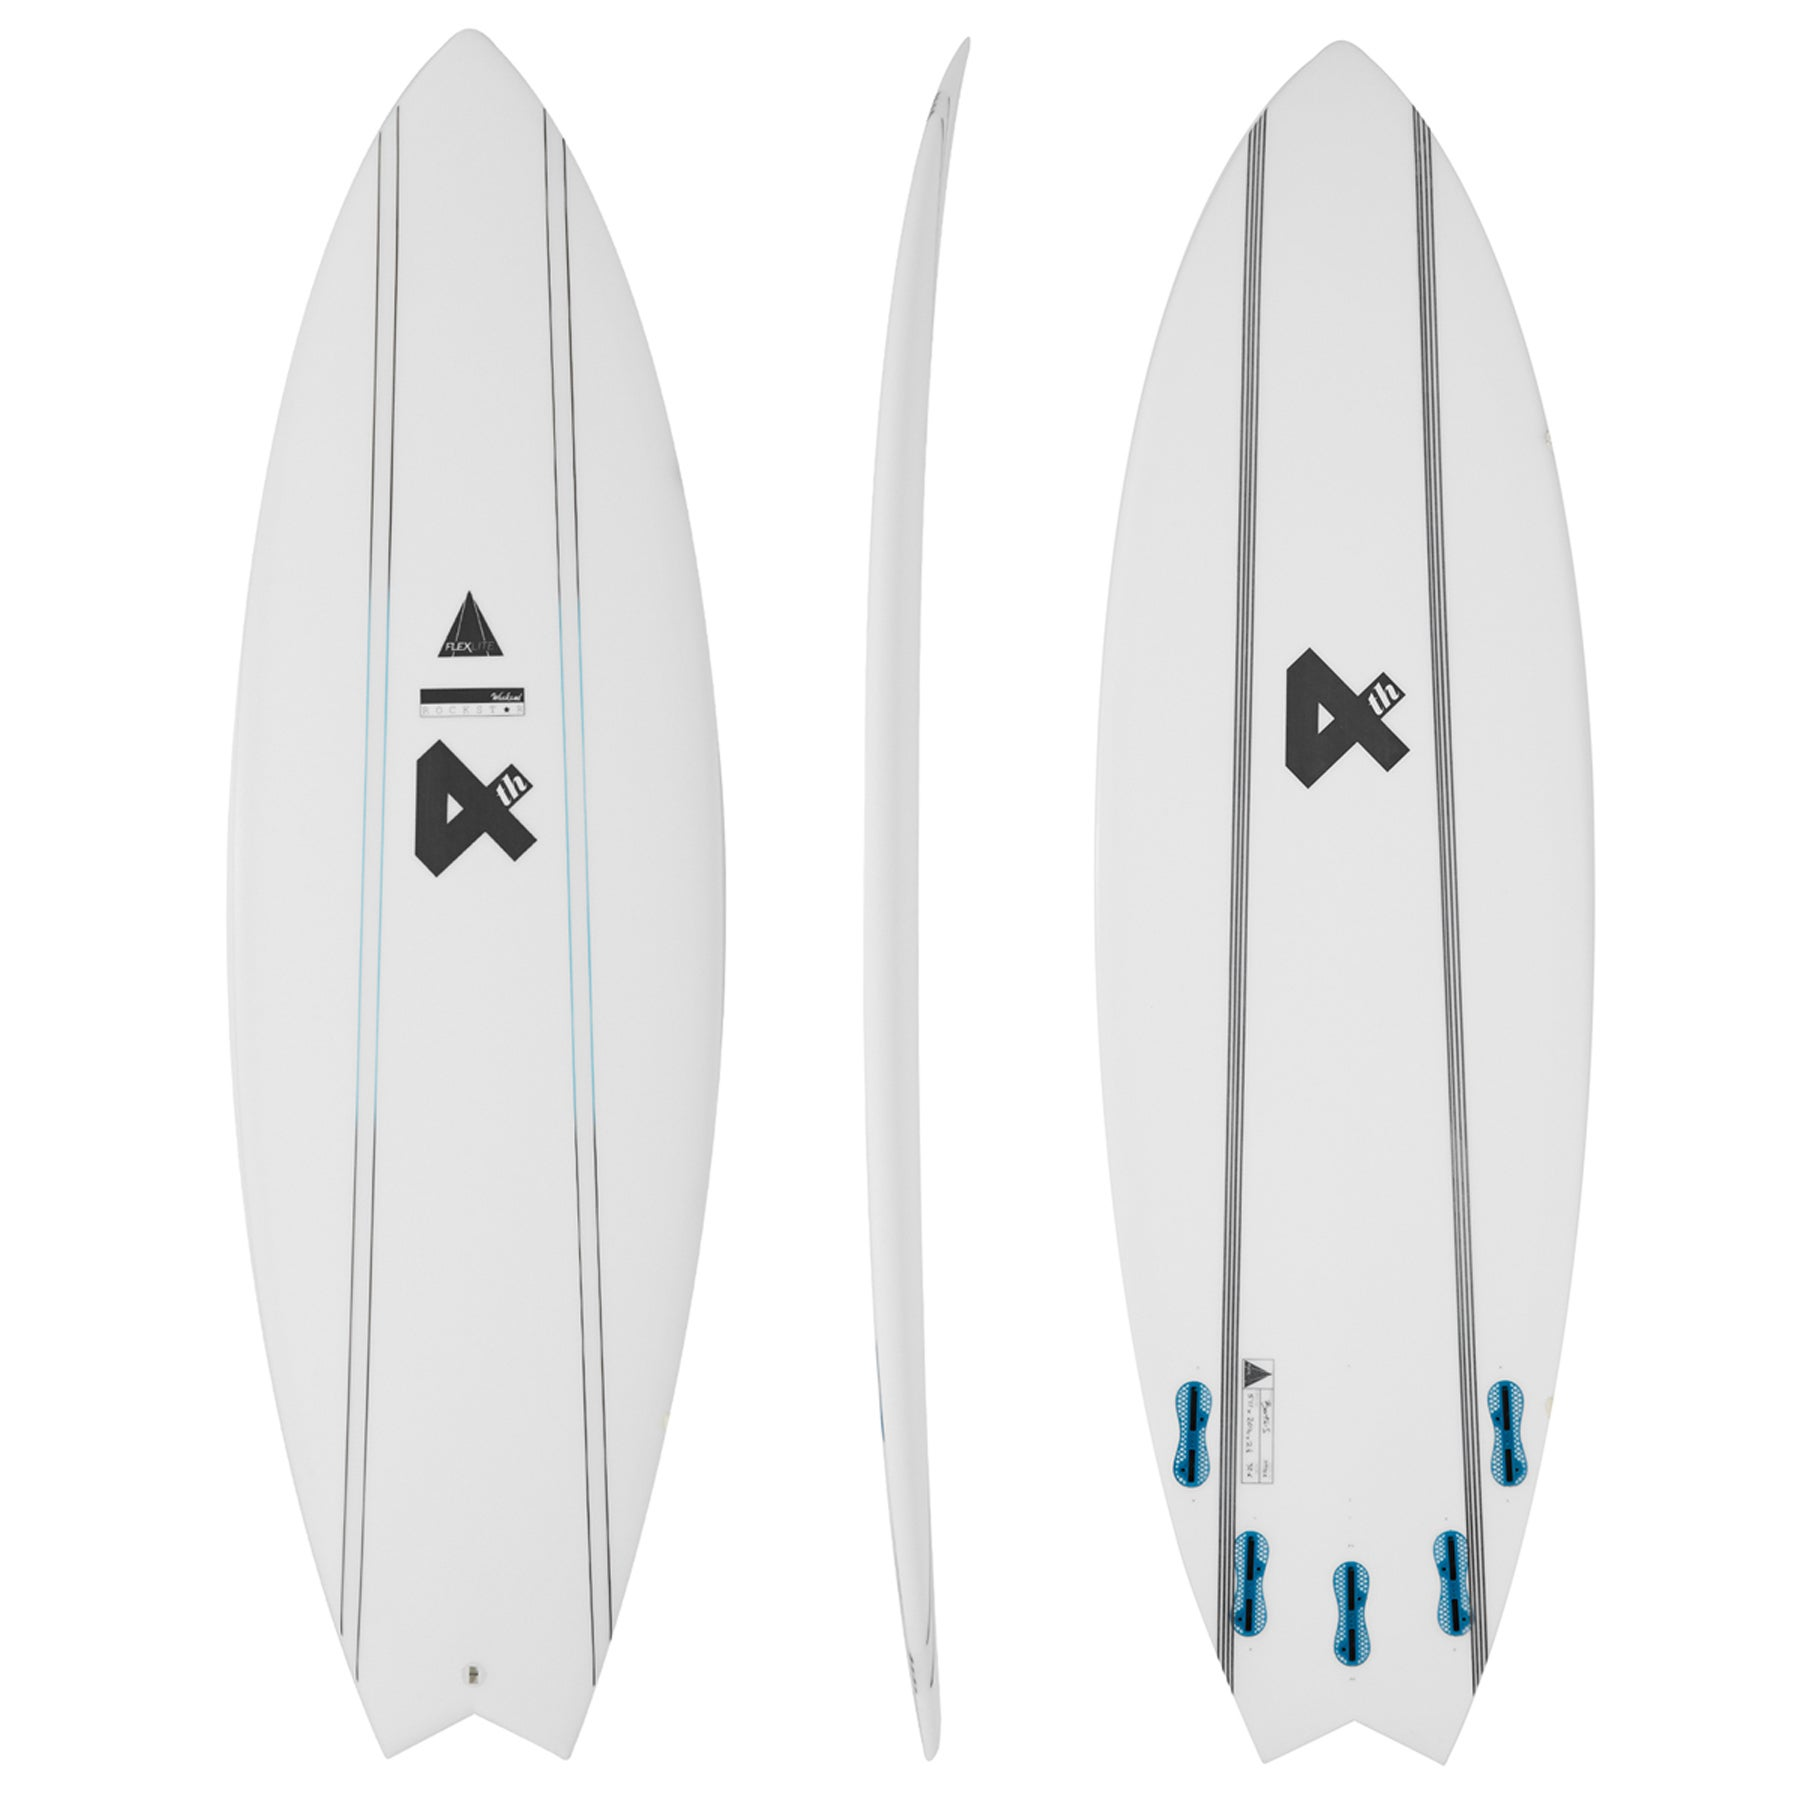 Fourth Surfboards Weekend Rockstar Flexlite FCS II 5 Fin Surfboard